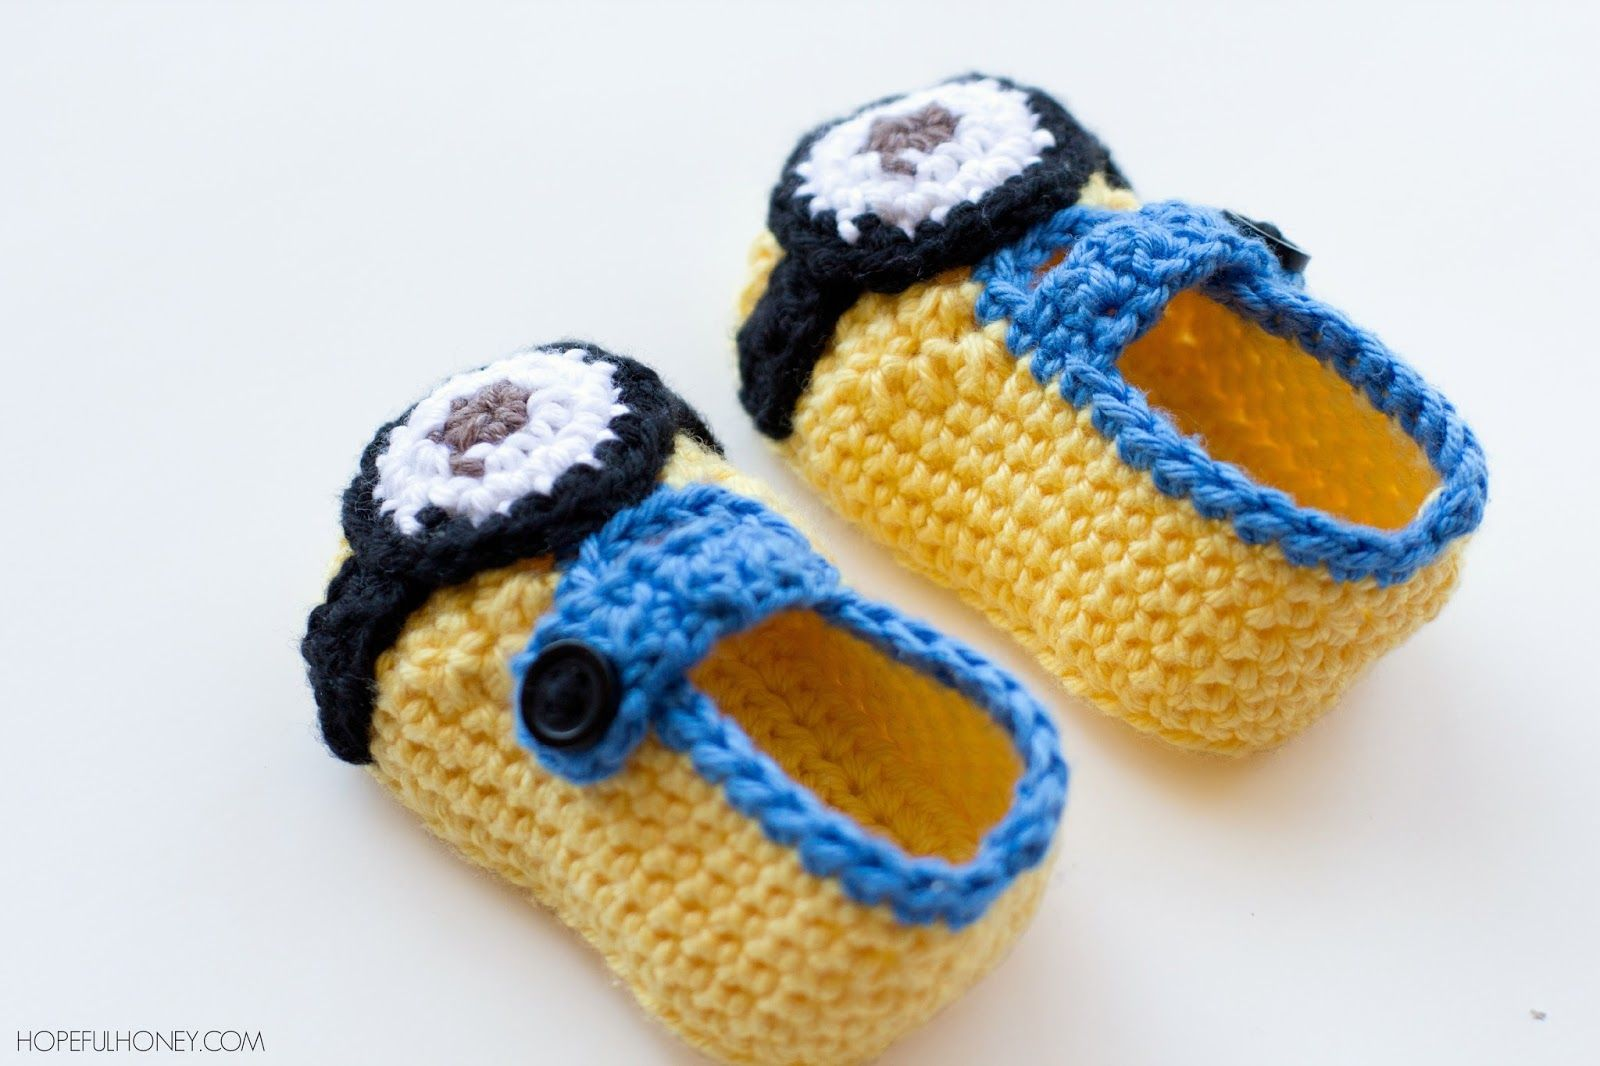 Minion Inspired Baby Booties Crochet Pattern | Häkelarbeiten ...